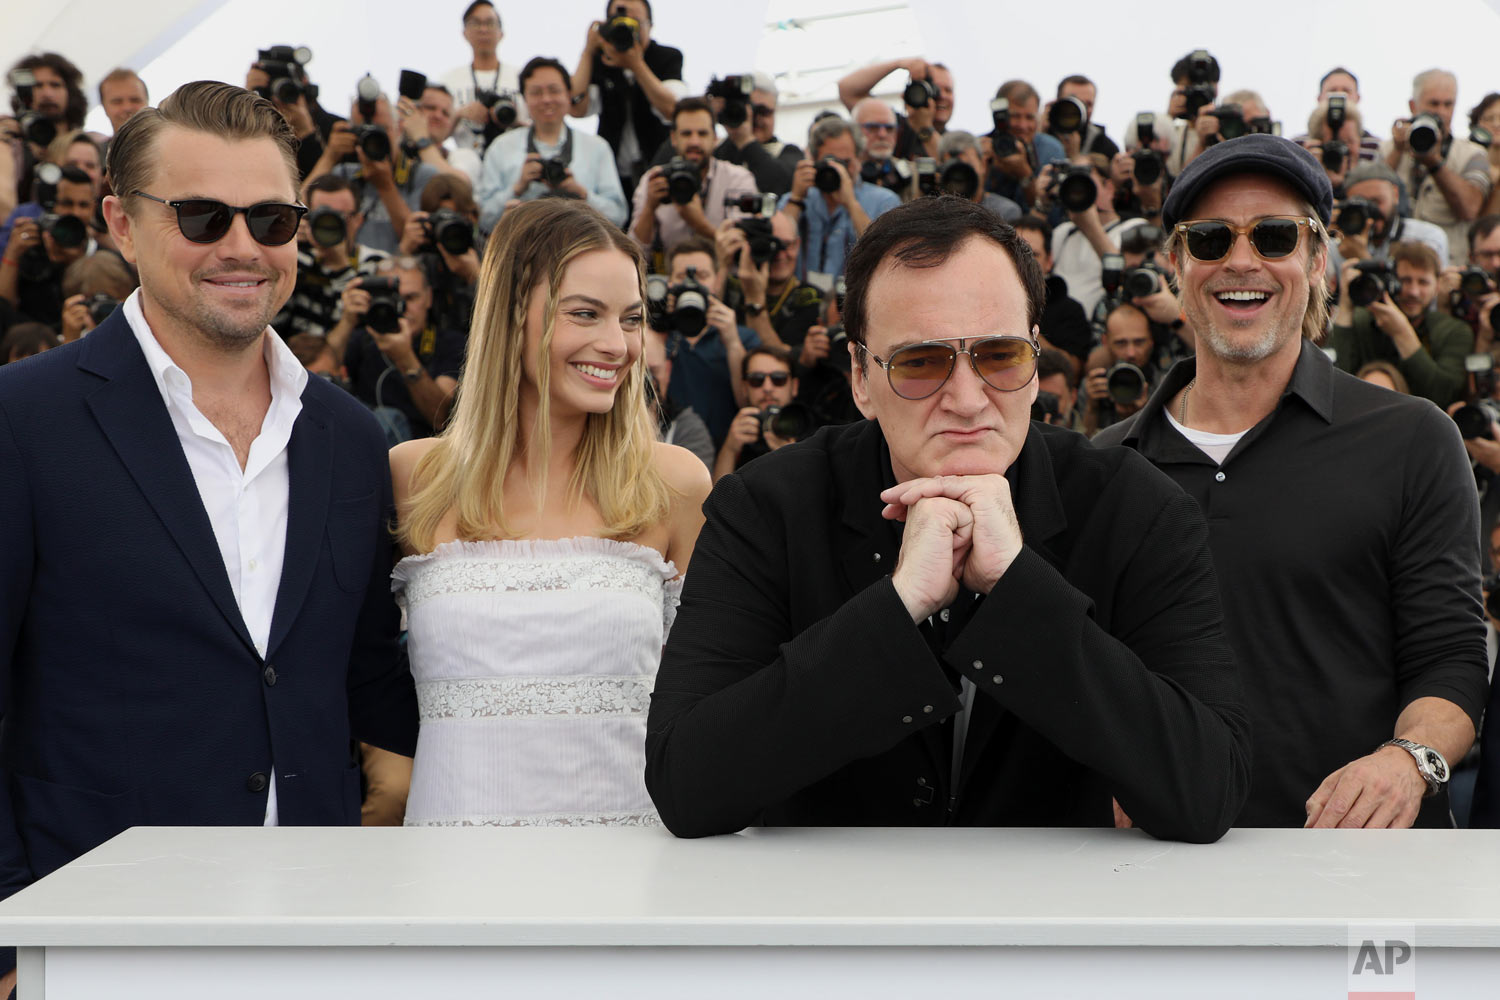 Actors Leonardo DiCaprio, from left, Margot Robbie, director Quentin Tarantino and actor Brad Pitt pose for photographers at the photo call for the film 'Once Upon a Time in Hollywood' at the 72nd international film festival, Cannes, southern France, May 22, 2019. (Photo by Vianney Le Caer/Invision/AP)